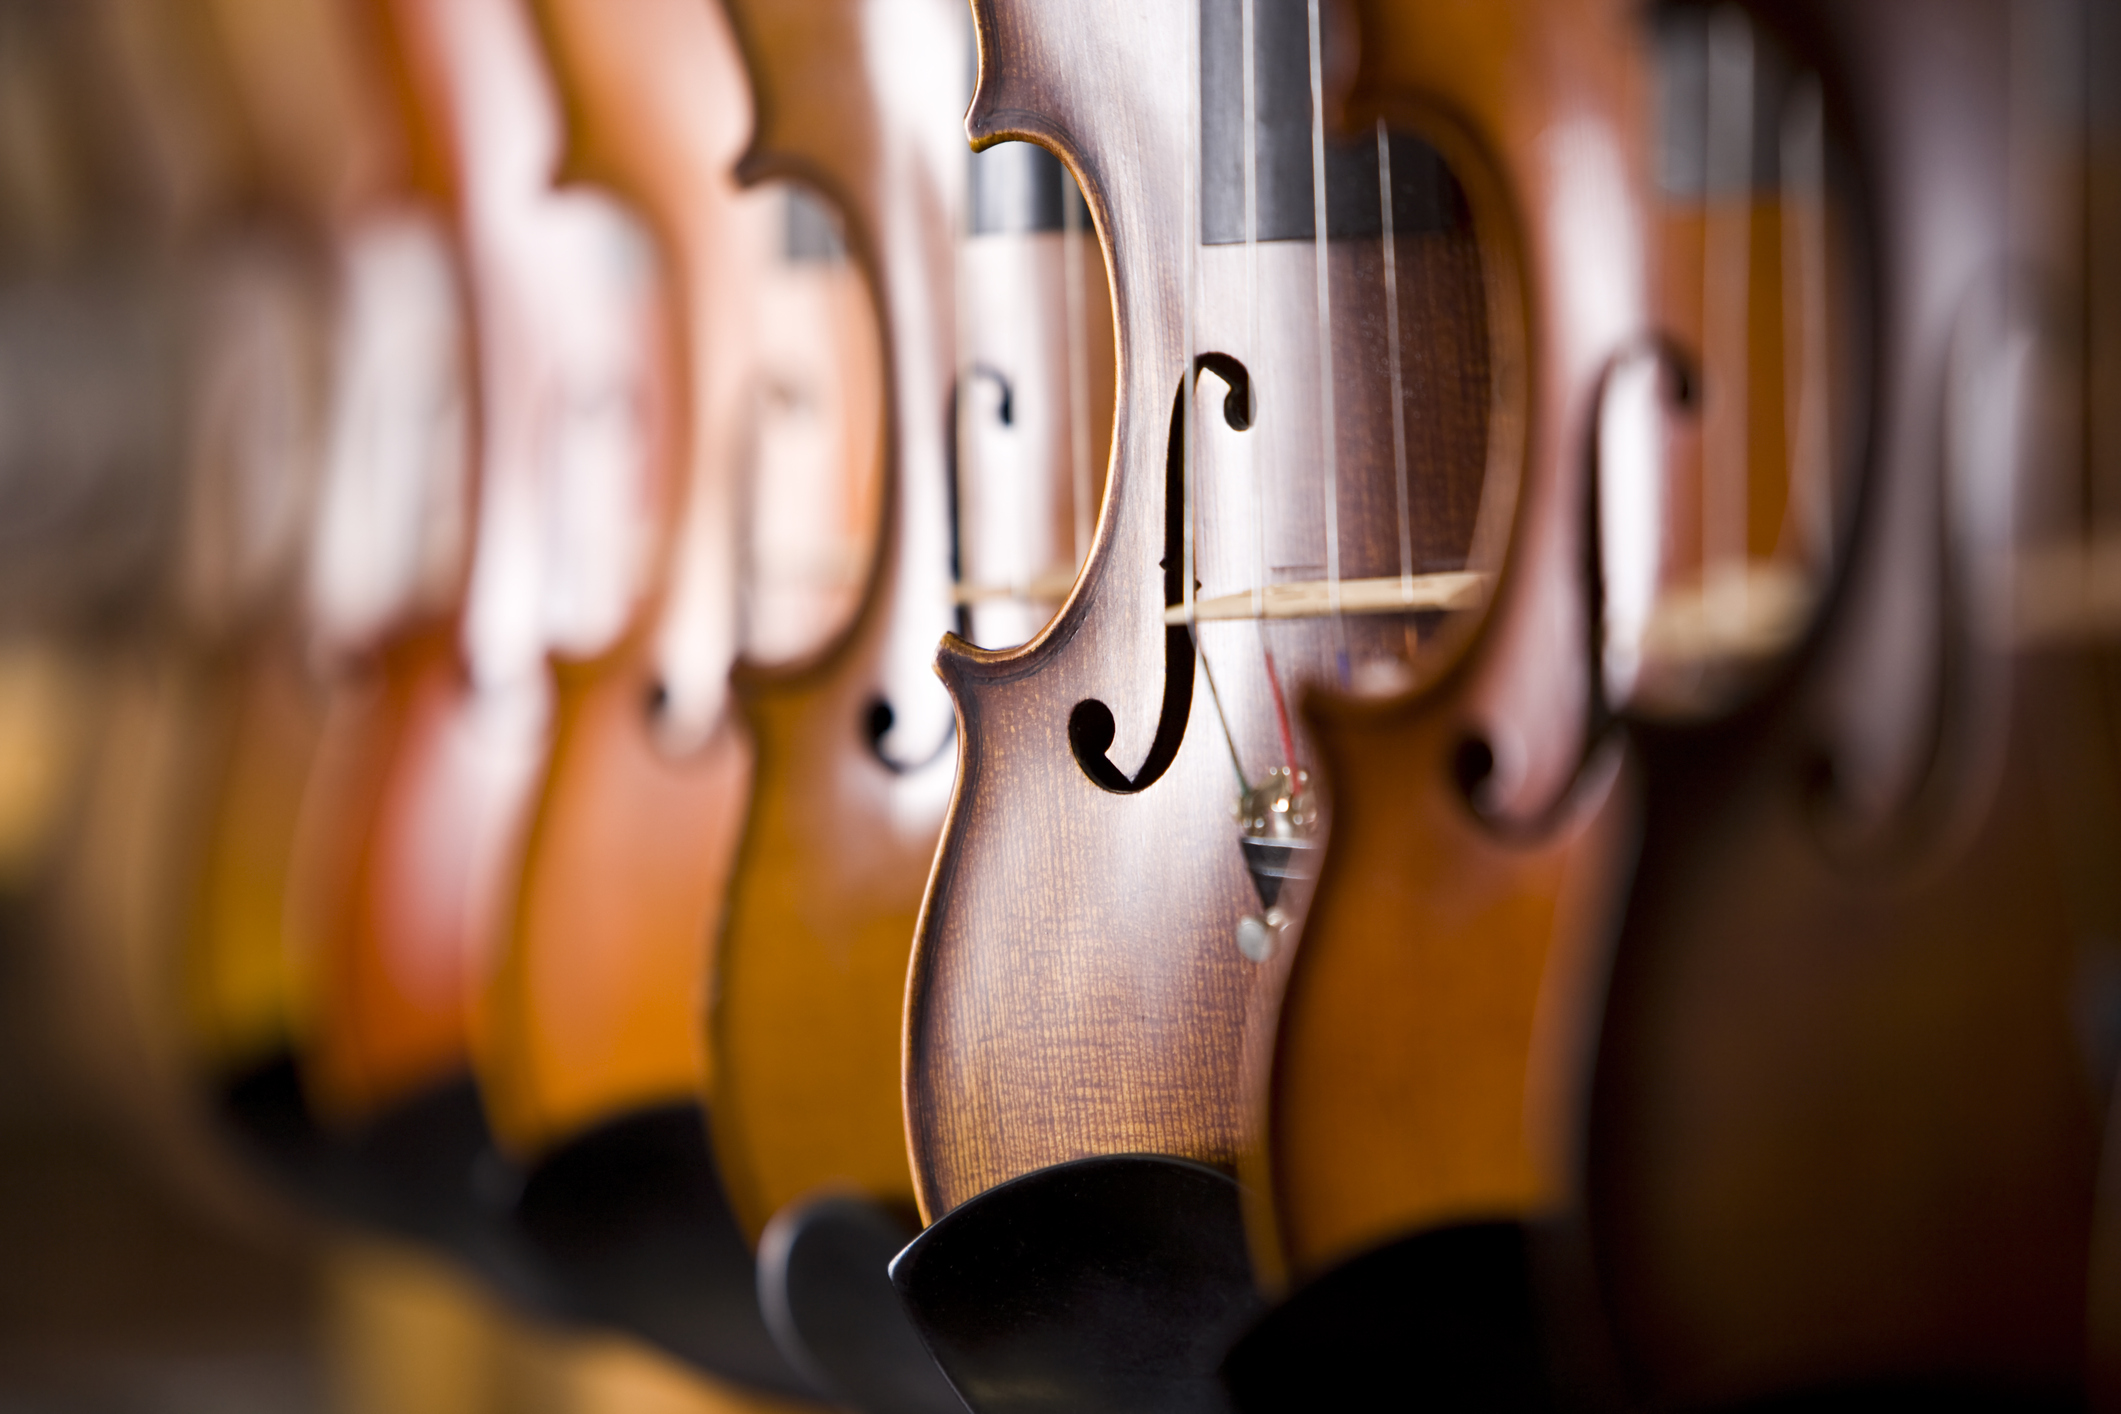 Repairs - Most violins, violas and cellos require regular maintenance. McLaughlin Violins specializes in exacting procedures that can usually be done in a day or two after an initial, complimentary evaluation.Instruments must be seen in person for accurate estimates to be given.